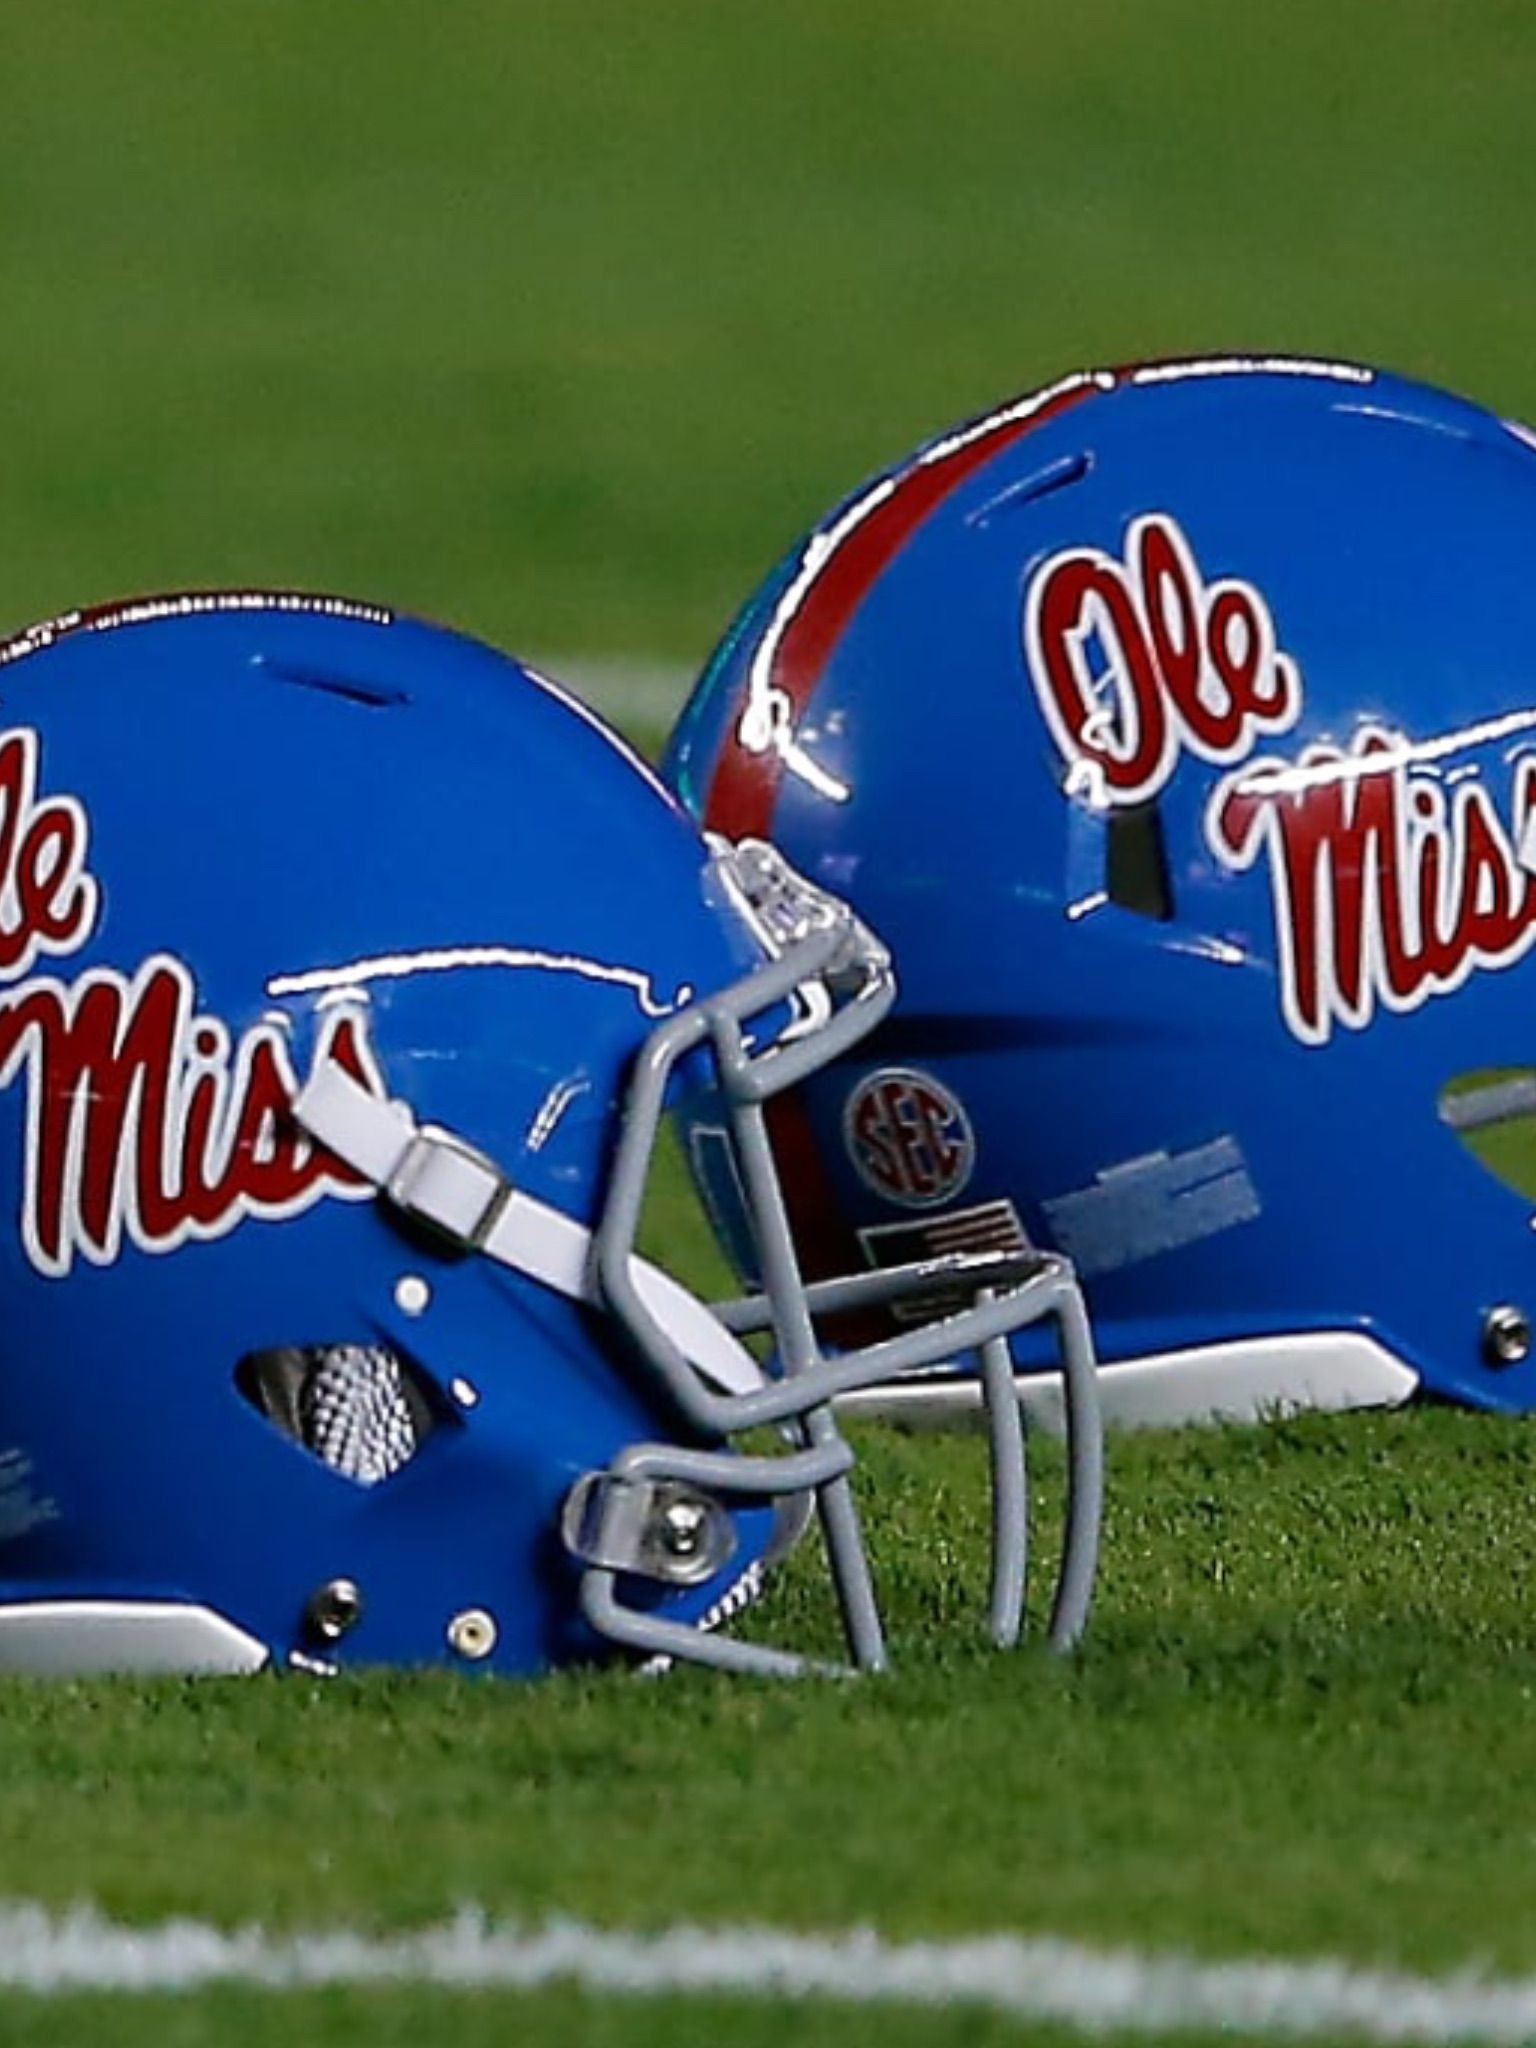 Pin by Chef James Foster Colson on ole miss Football